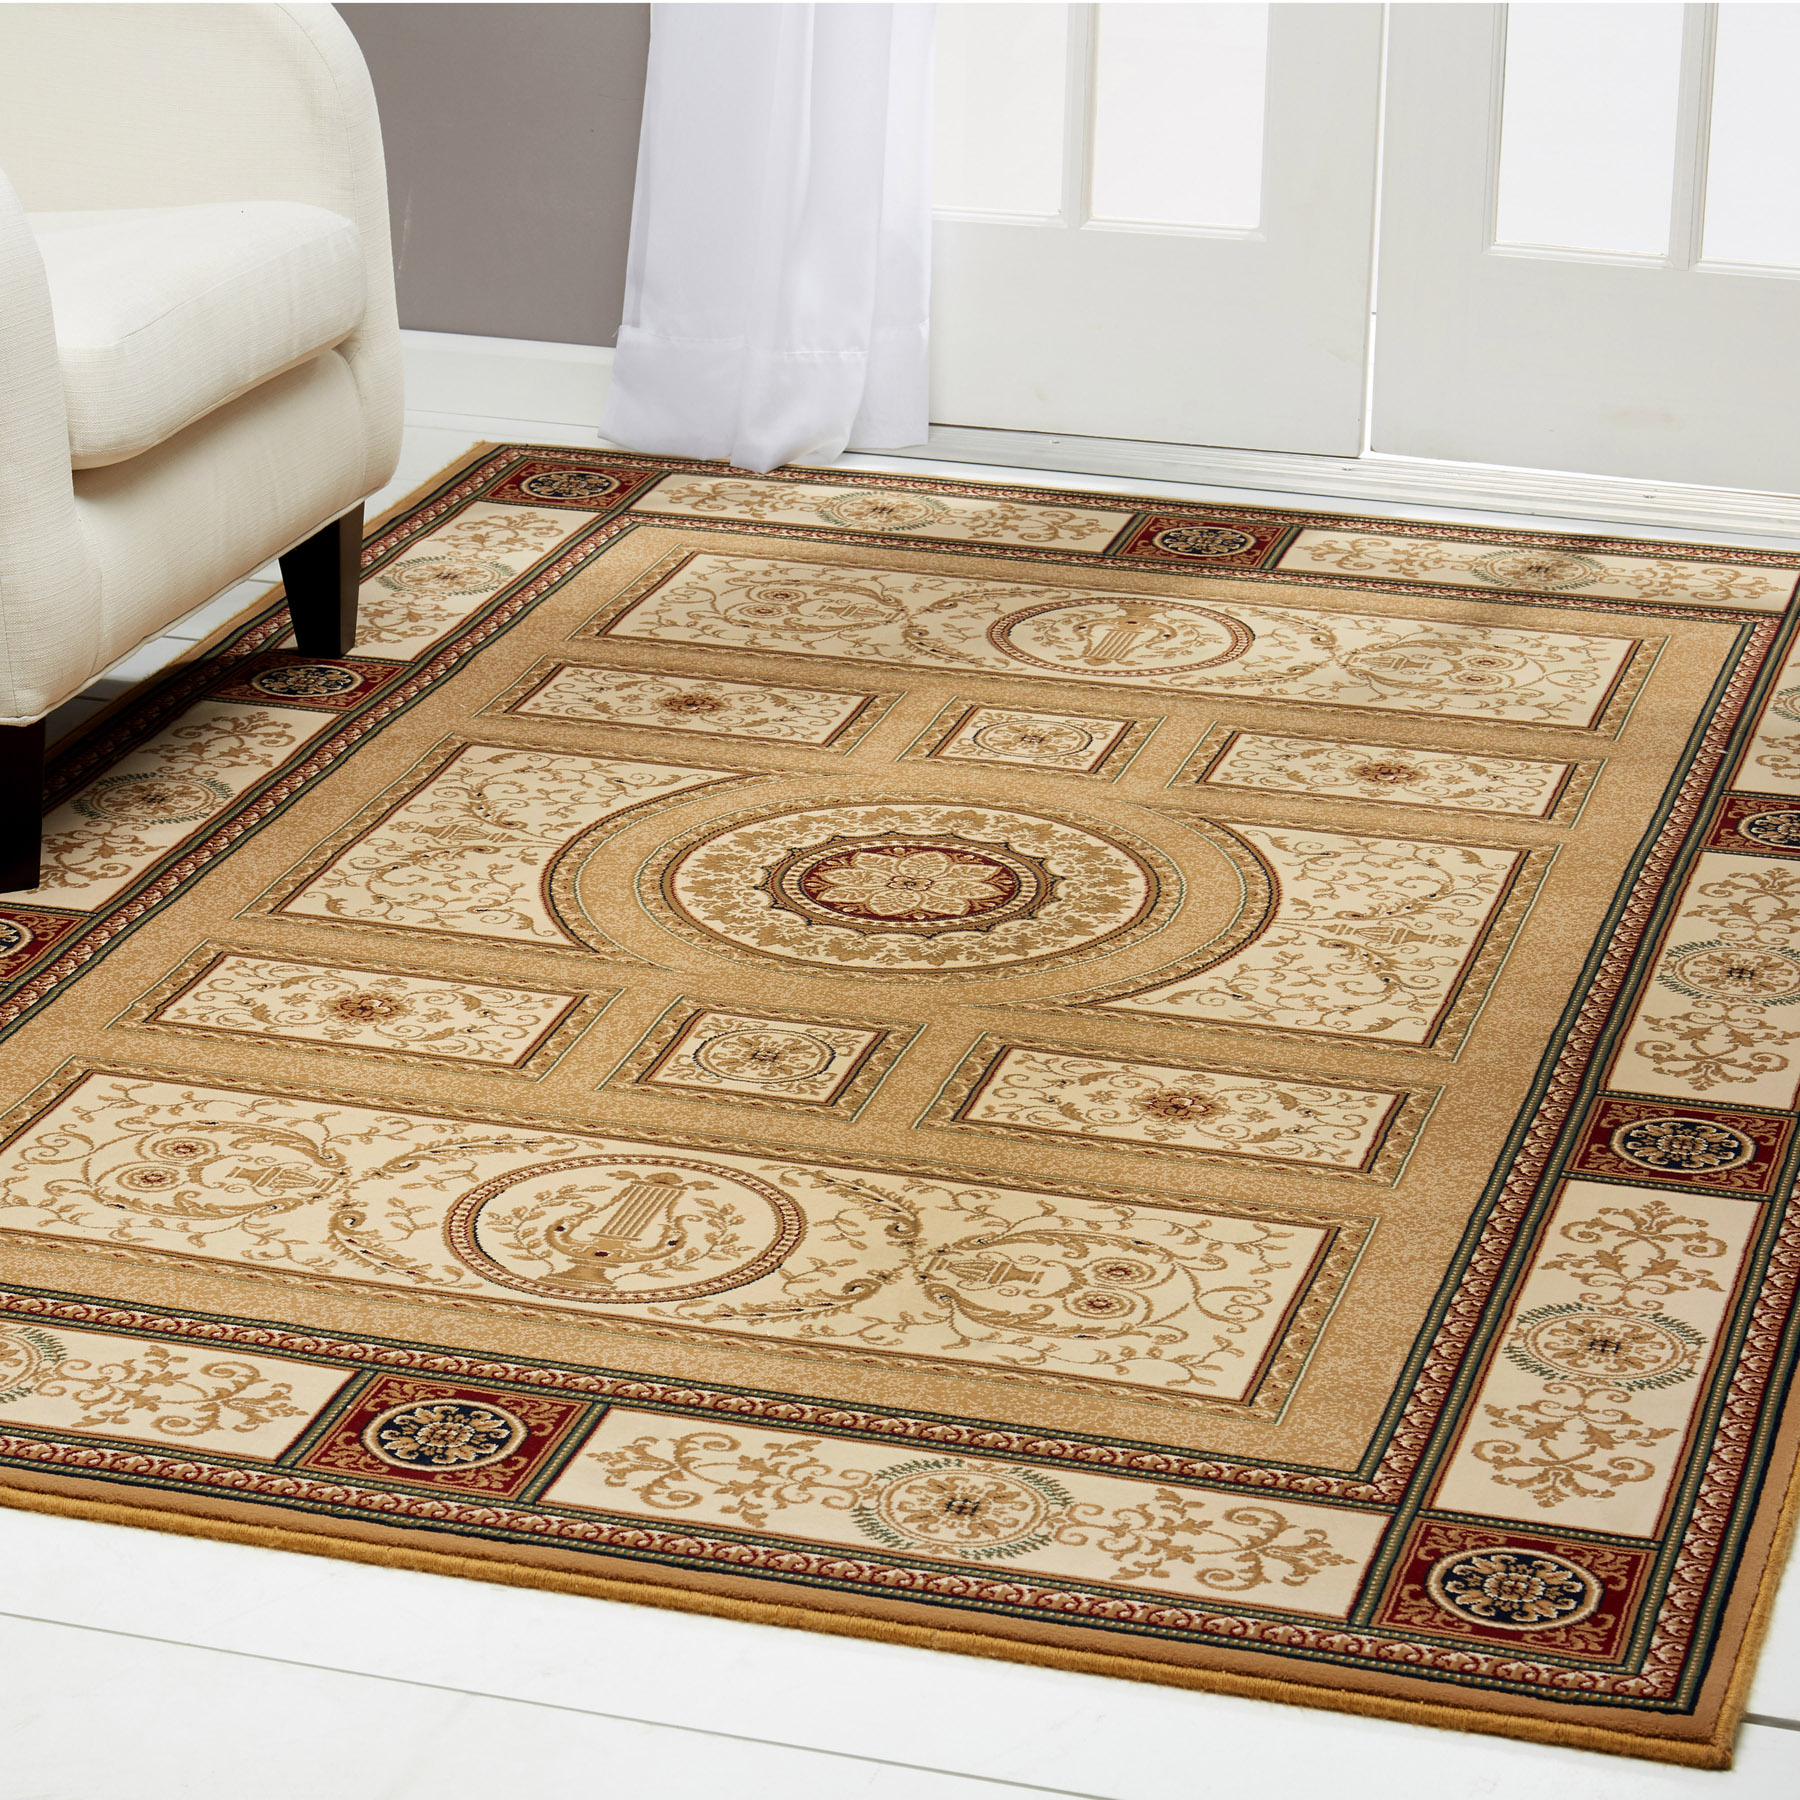 Gold Free S H Persian Area Rug 3 X 8 Runner Oriental 7 Actual 2 7